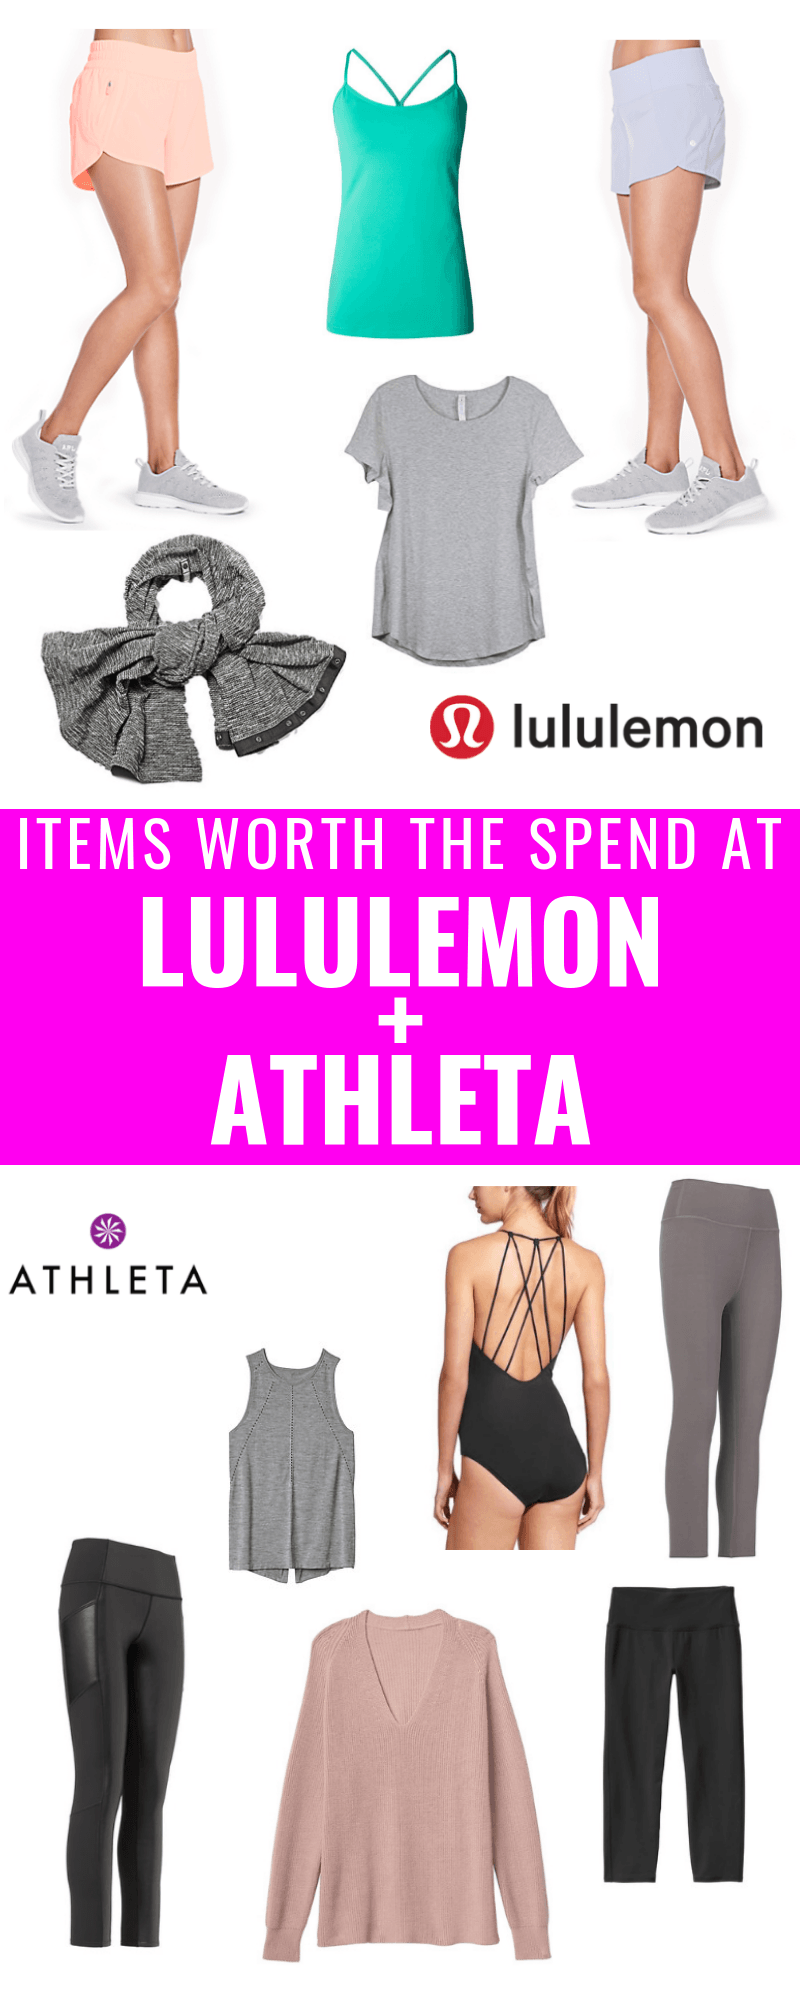 Items Worth The Spend At Lululemon + Athleta - Items Worth The Spend At Lululemon - Items Worth The Spend At Athleta- Fitness - Shopping - Communikait by Kait Hanson